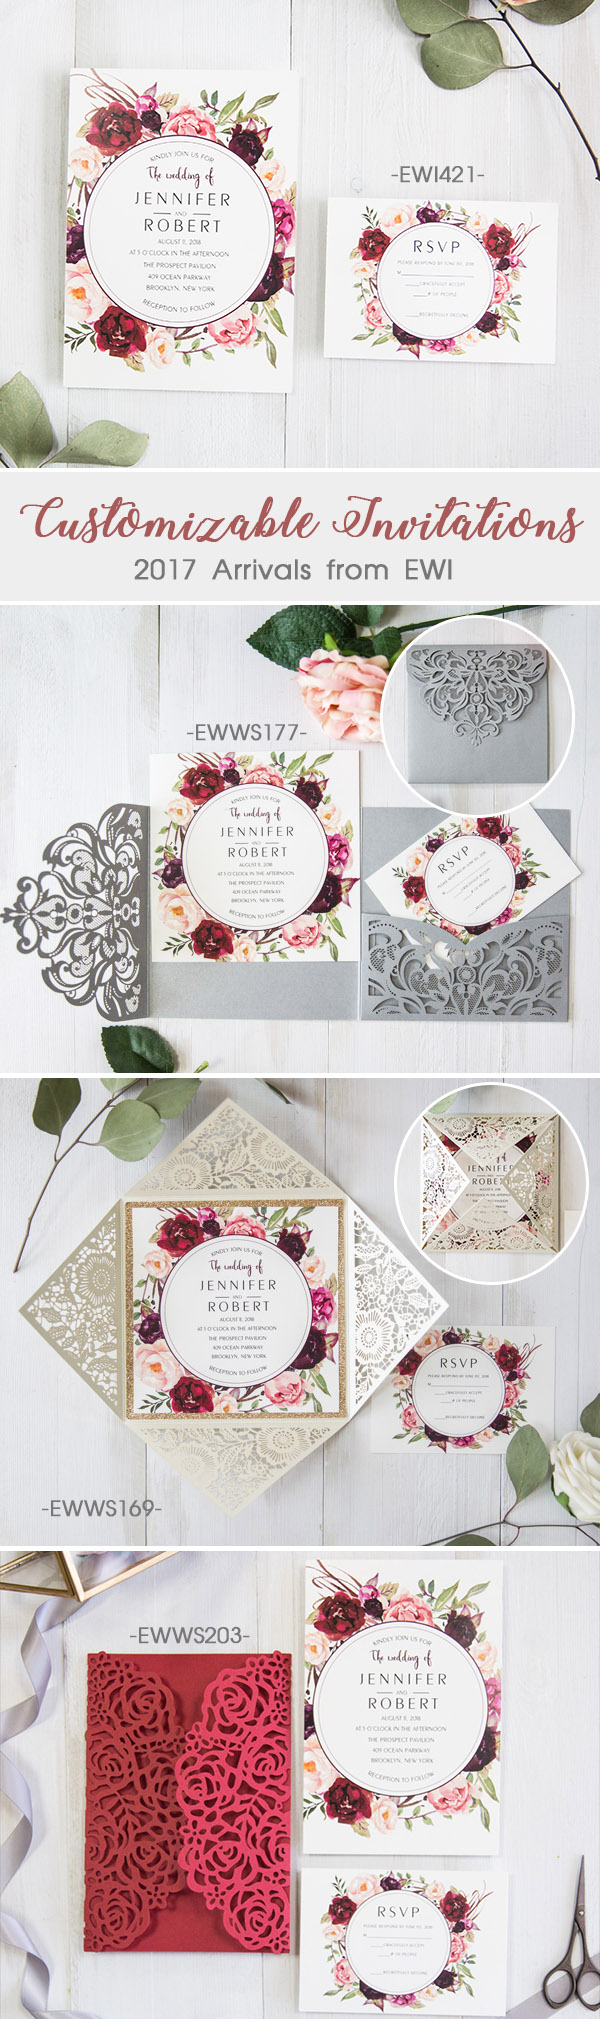 Outside Pocket Customizable Wedding Invitations from Elegant Wedding Invites